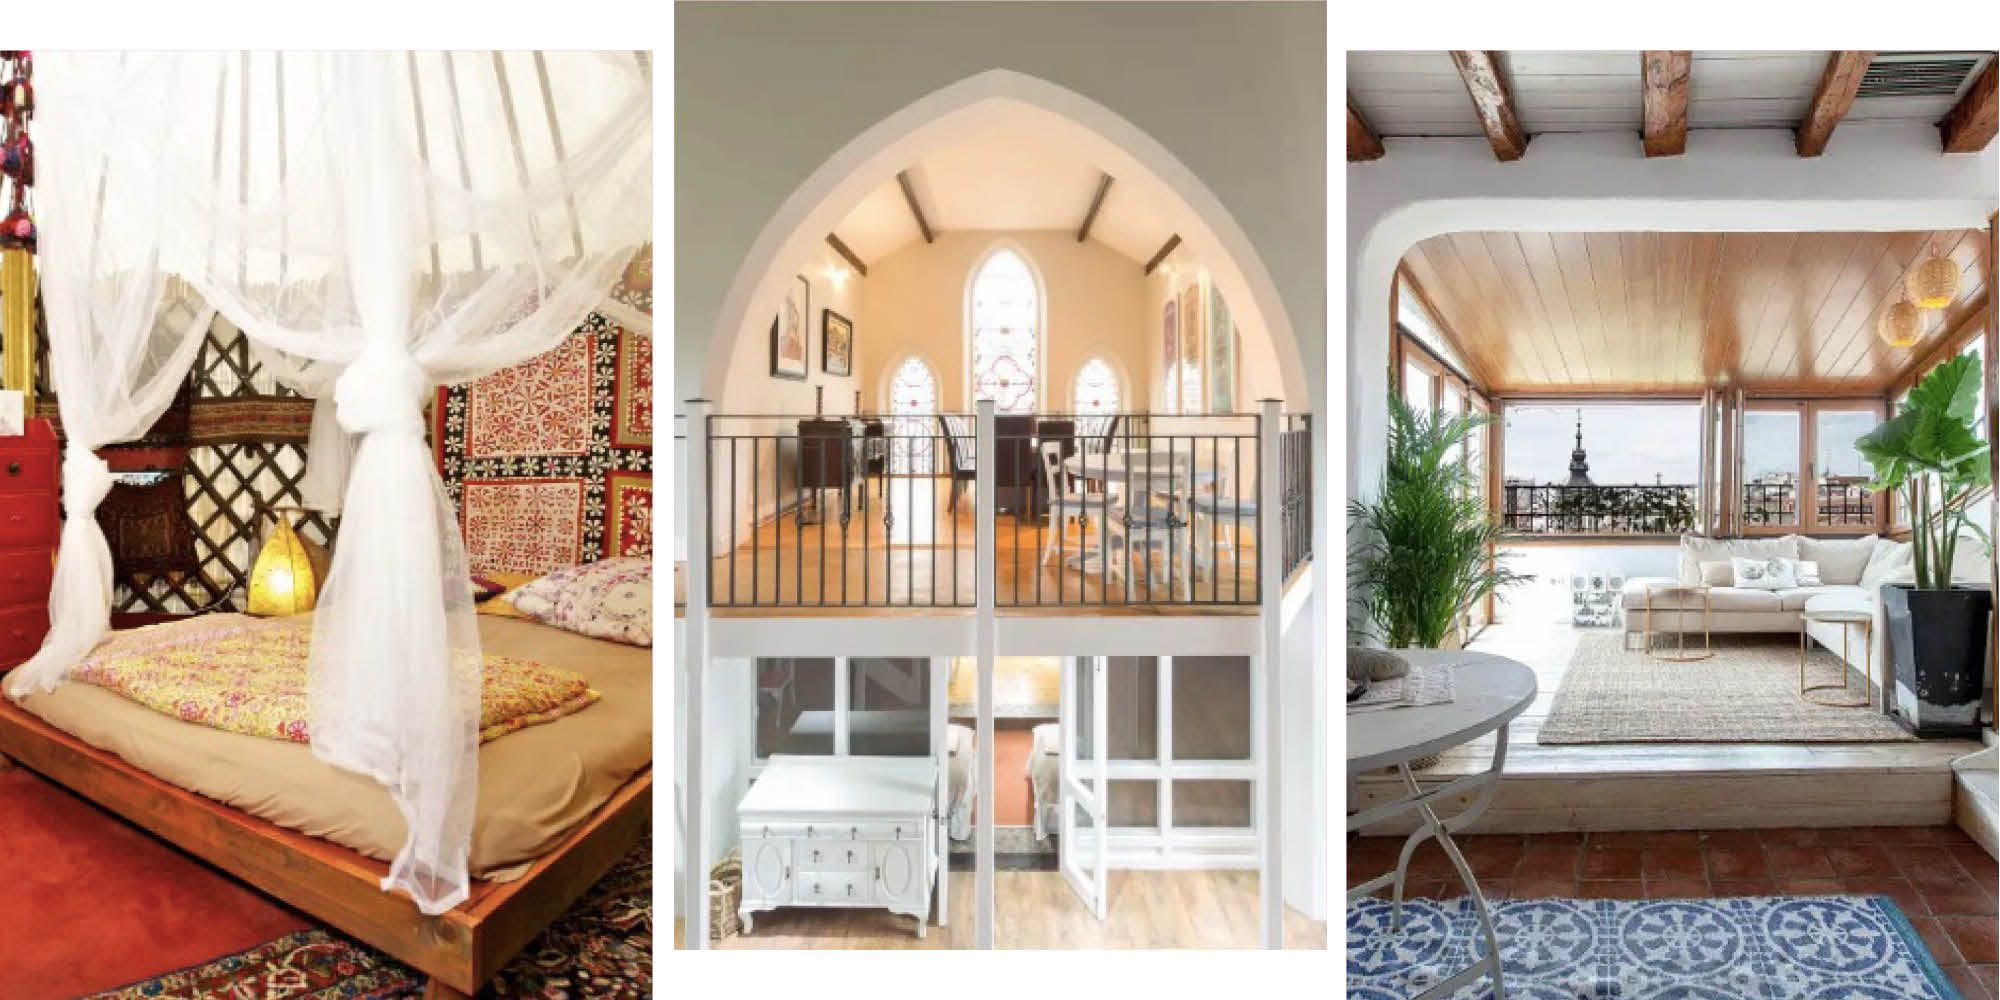 24 of the quirkiest European Airbnbs you can actually stay in